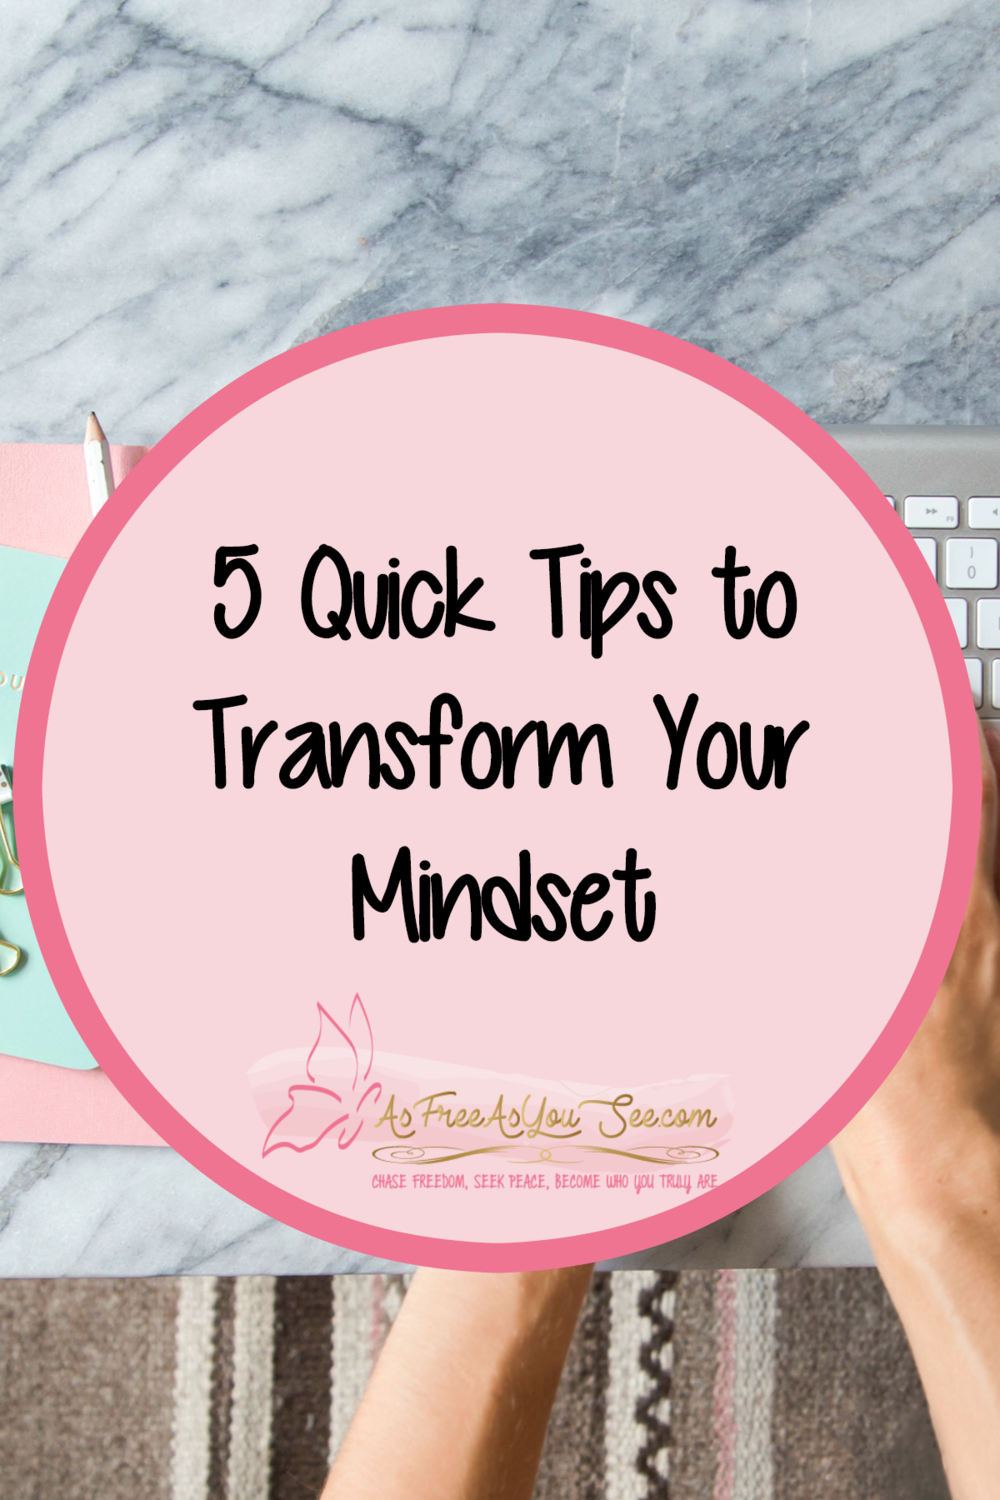 5 Quick Tips to Transform Your Mindset